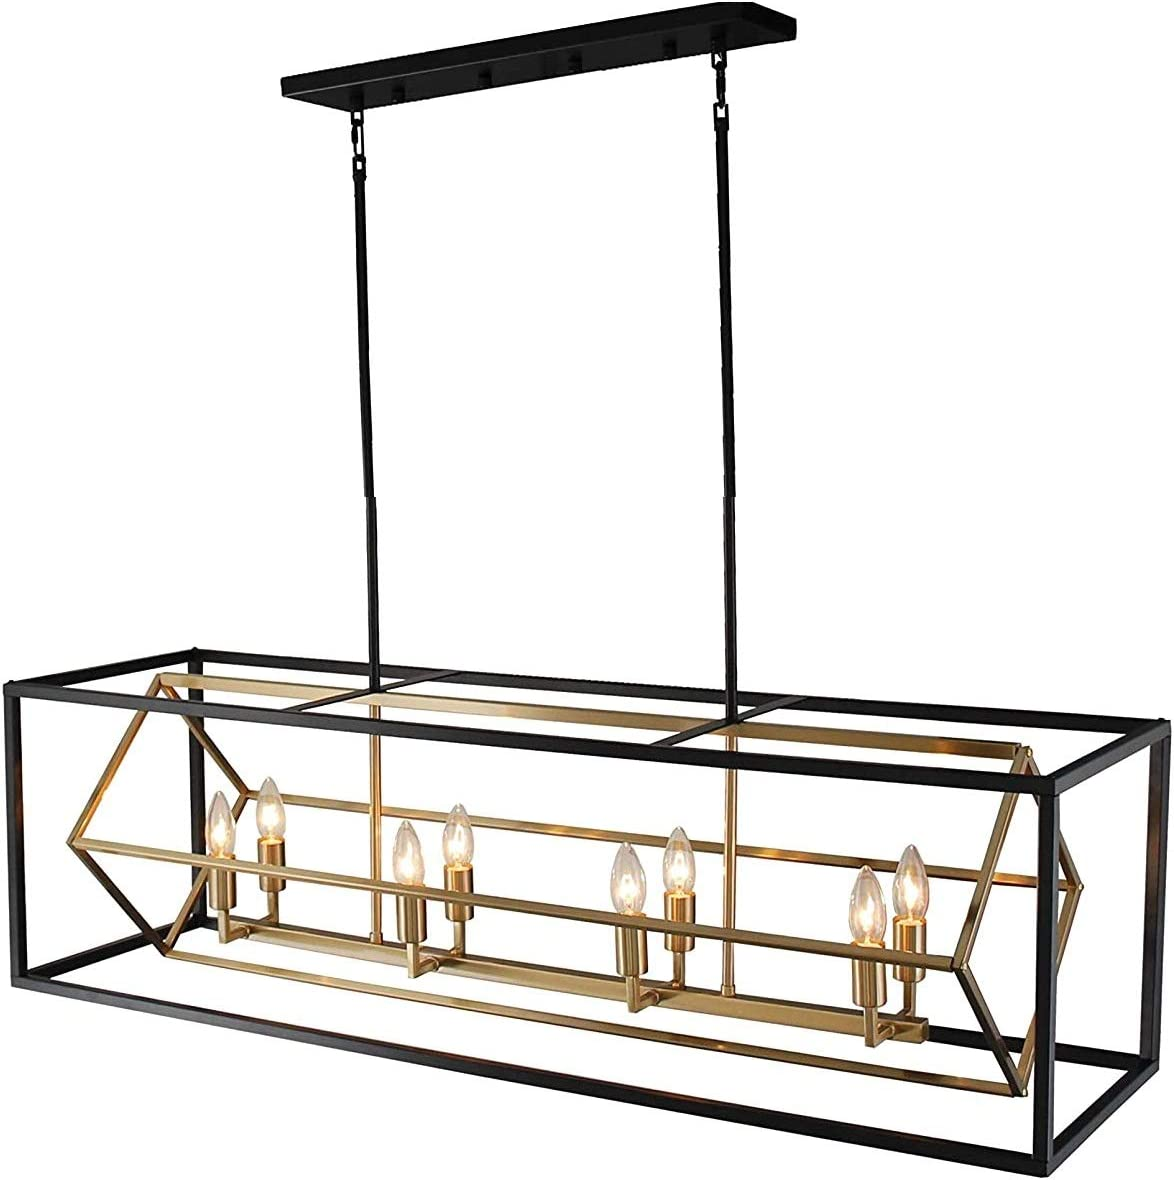 Titania 8-Light x 44 Dinning Room Island Fixture Black Metal Two Tones Linear Chandelier Open Cage Ideal for Dining Room, Game Rooms, Kitchen and Islands Brass